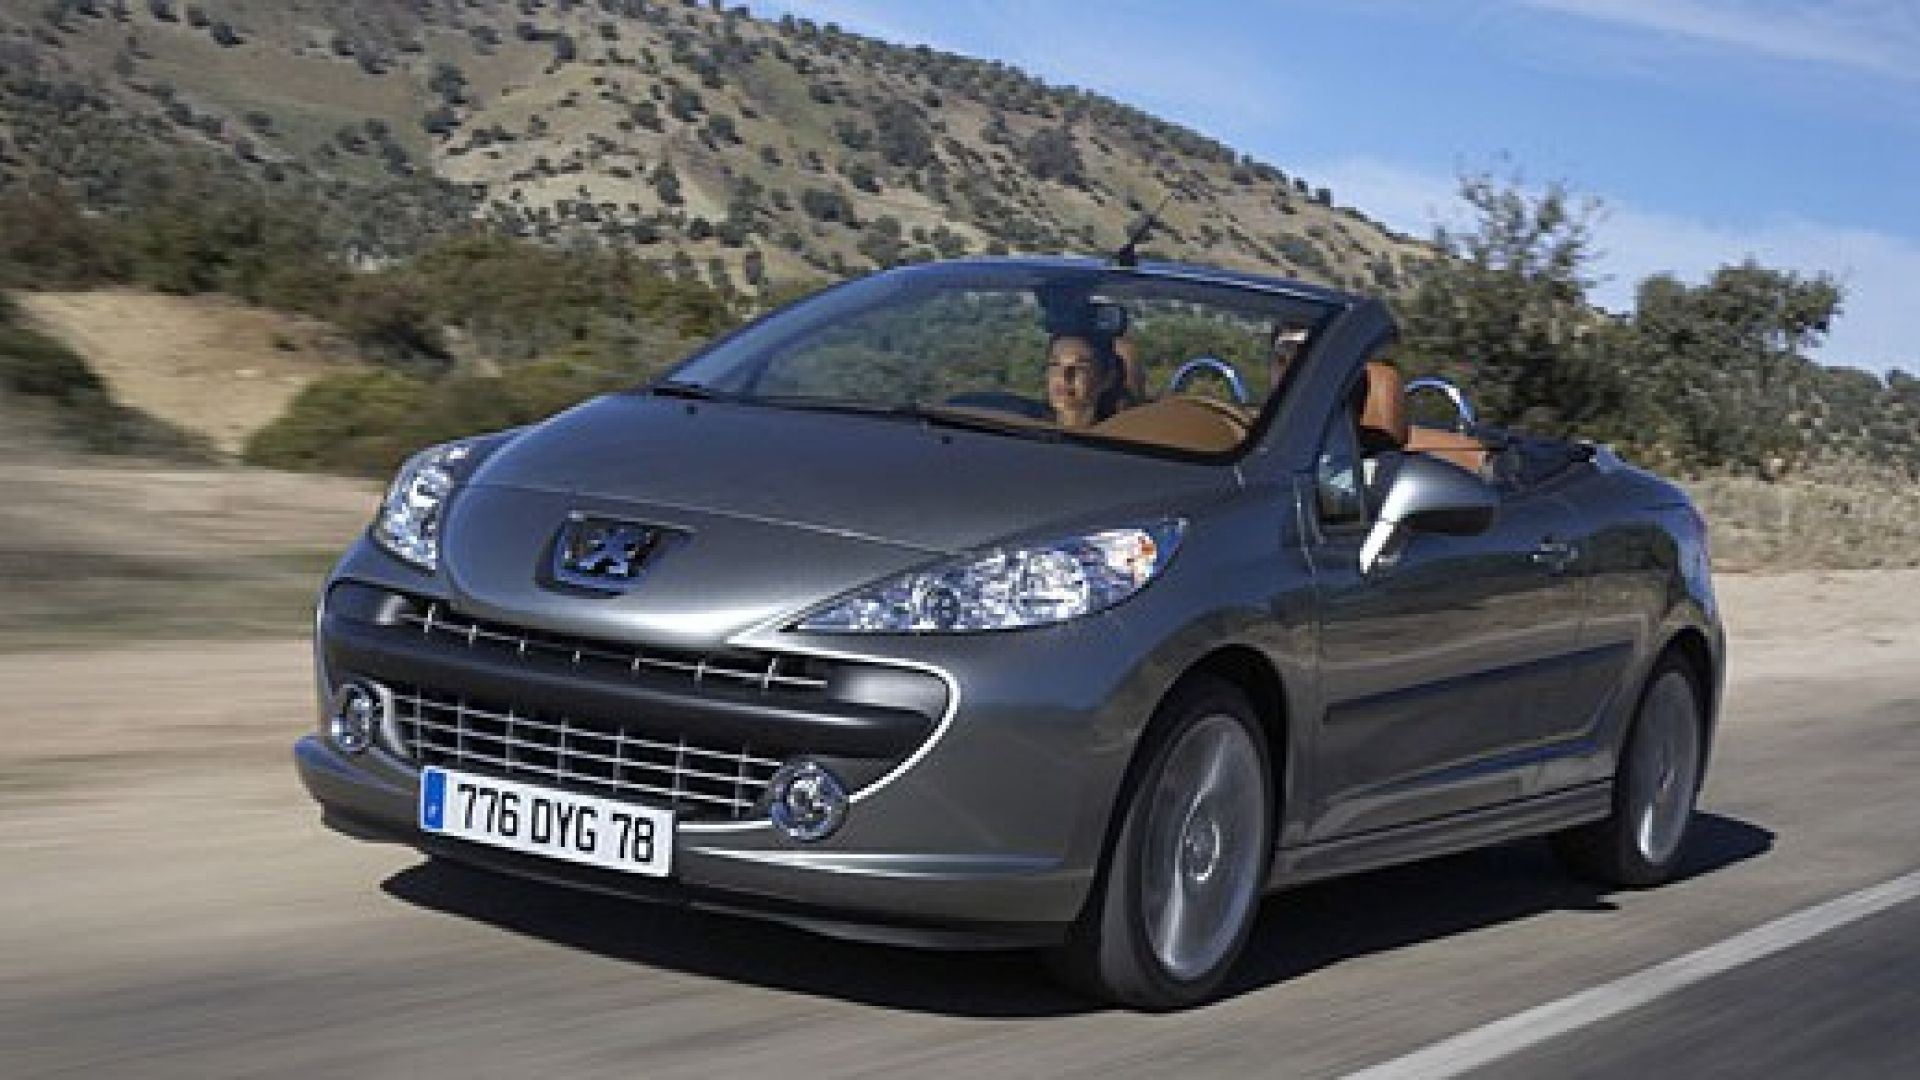 peugeot 207 cabrio. Black Bedroom Furniture Sets. Home Design Ideas